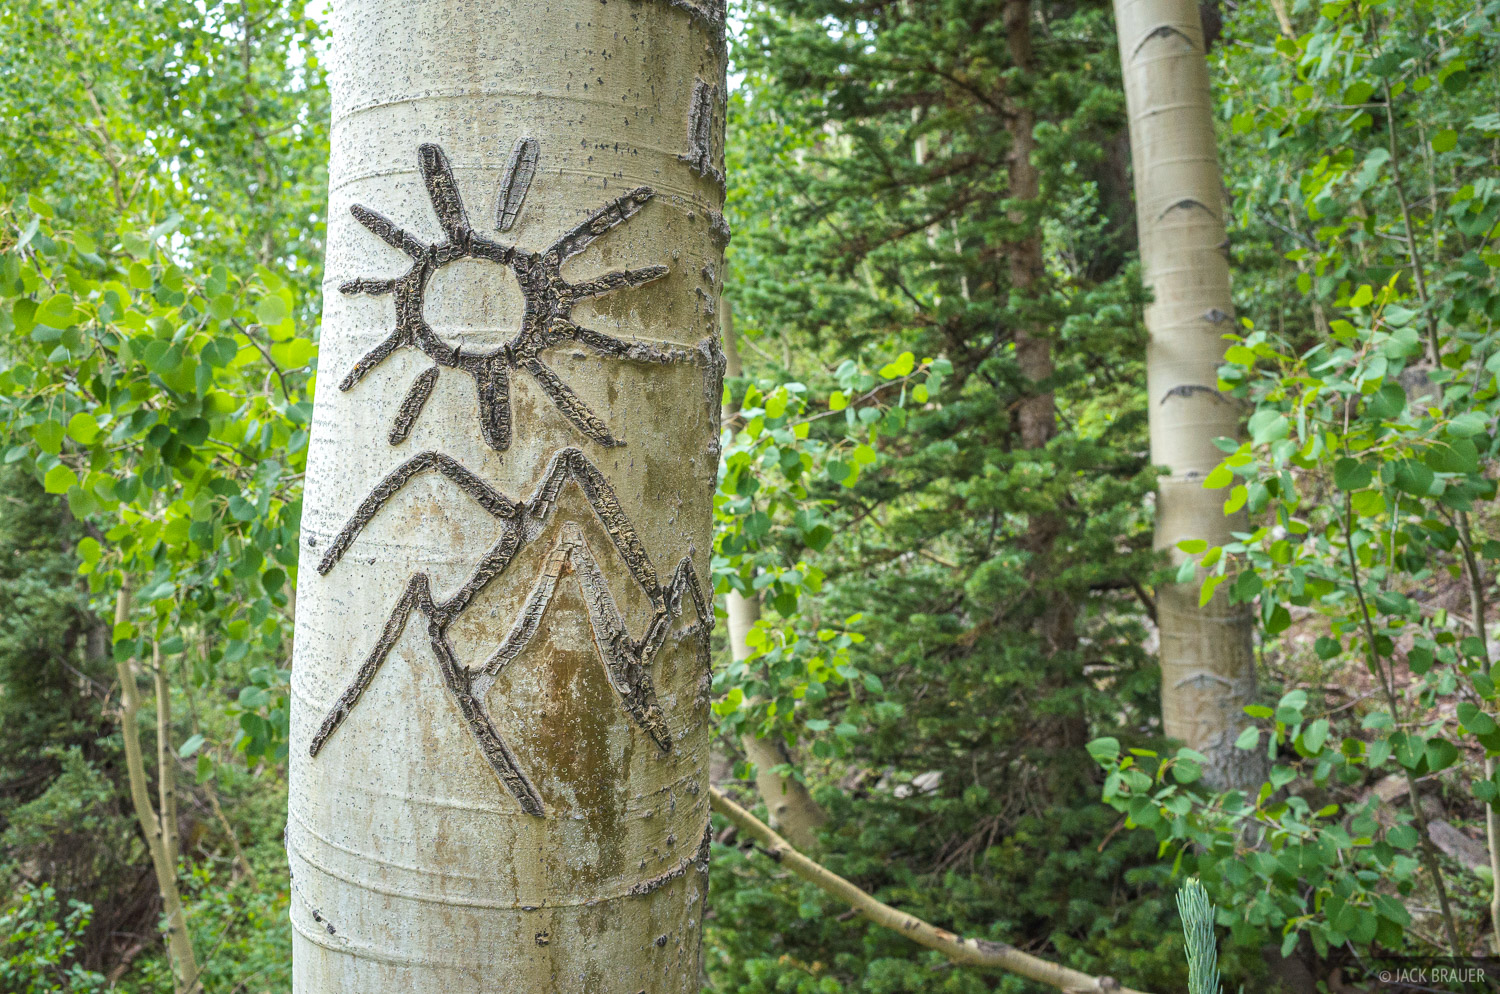 Artistic carving on an aspen tree.